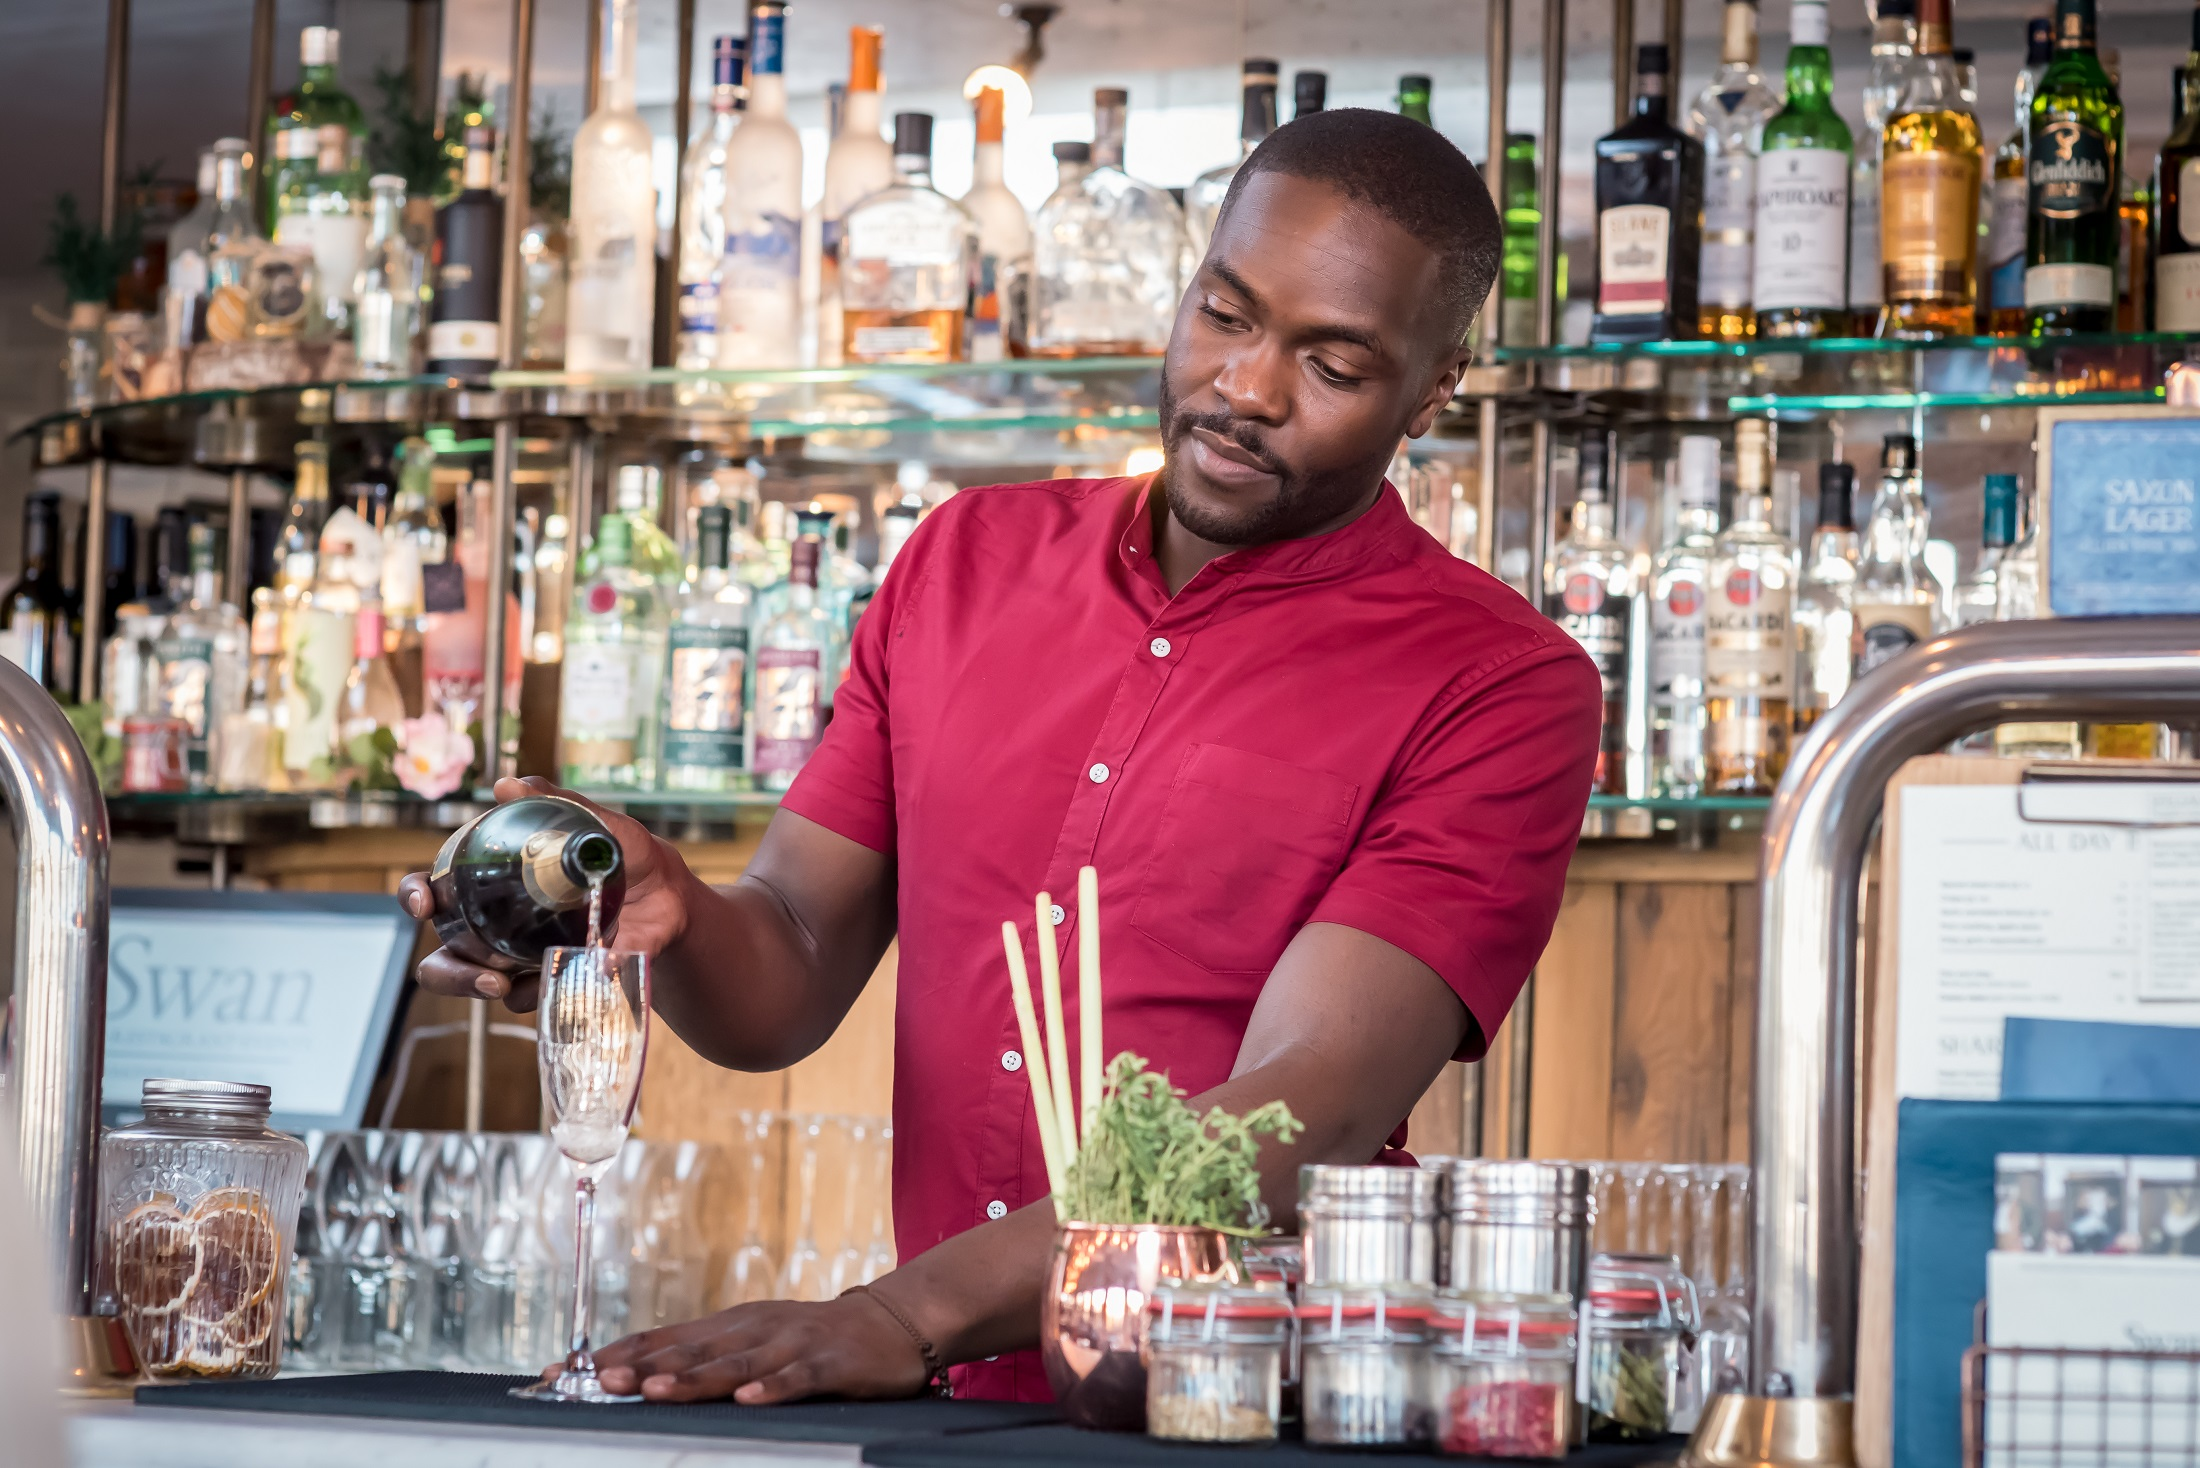 A barman in a red shirt pours a cocktail